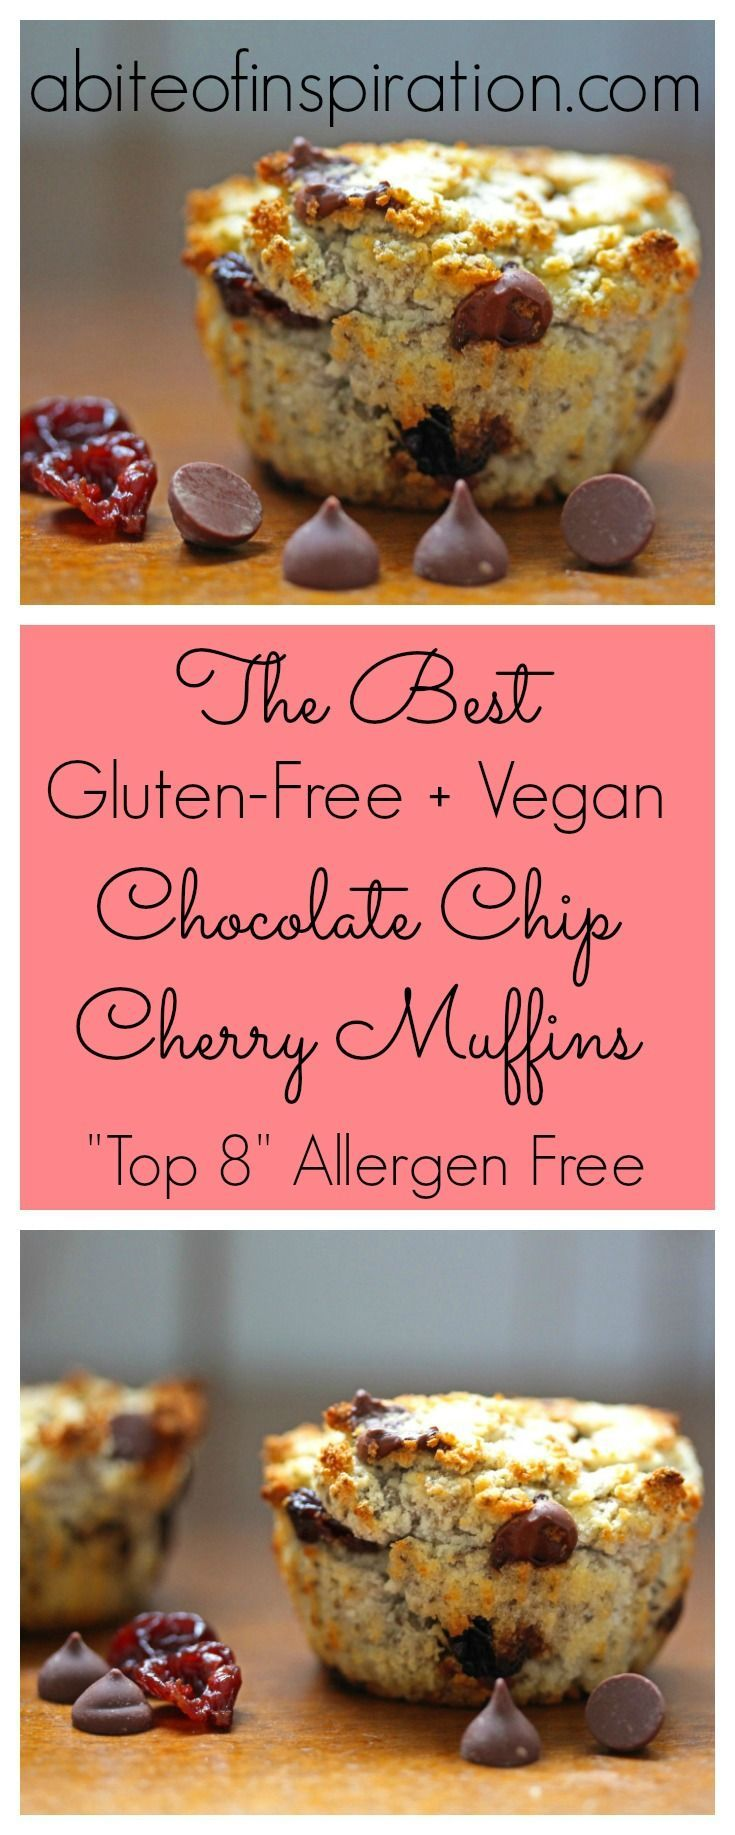 Best 25+ Coconut allergy ideas on Pinterest   Lactose free sweets ...